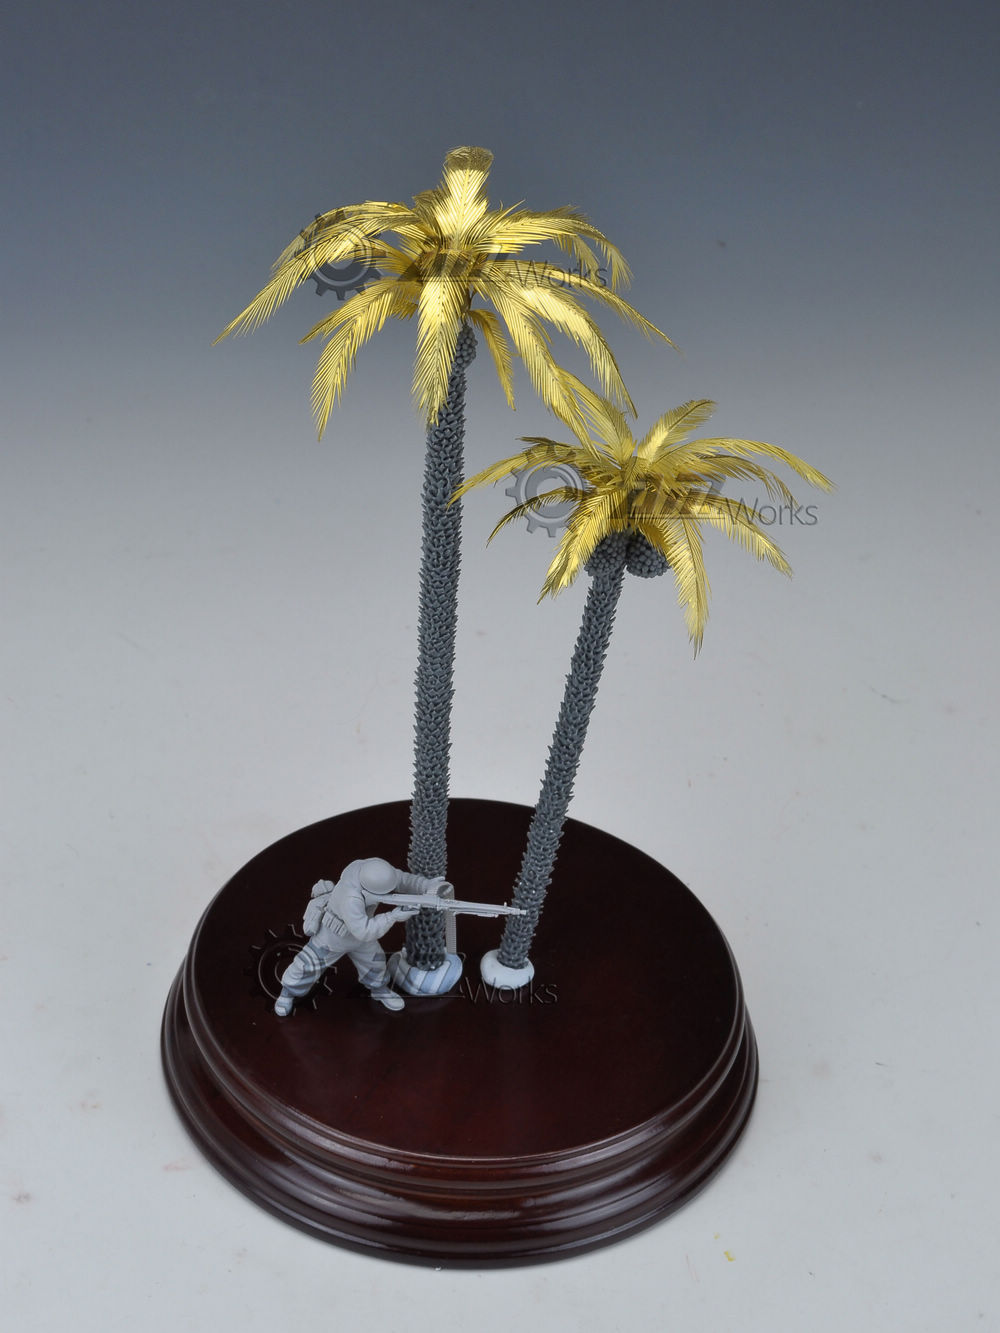 New 1/35 Coconut Tree For WWII German In Africa Model Scene (Resin+Leaves Etching Sheet) Good Details Drop Shipping